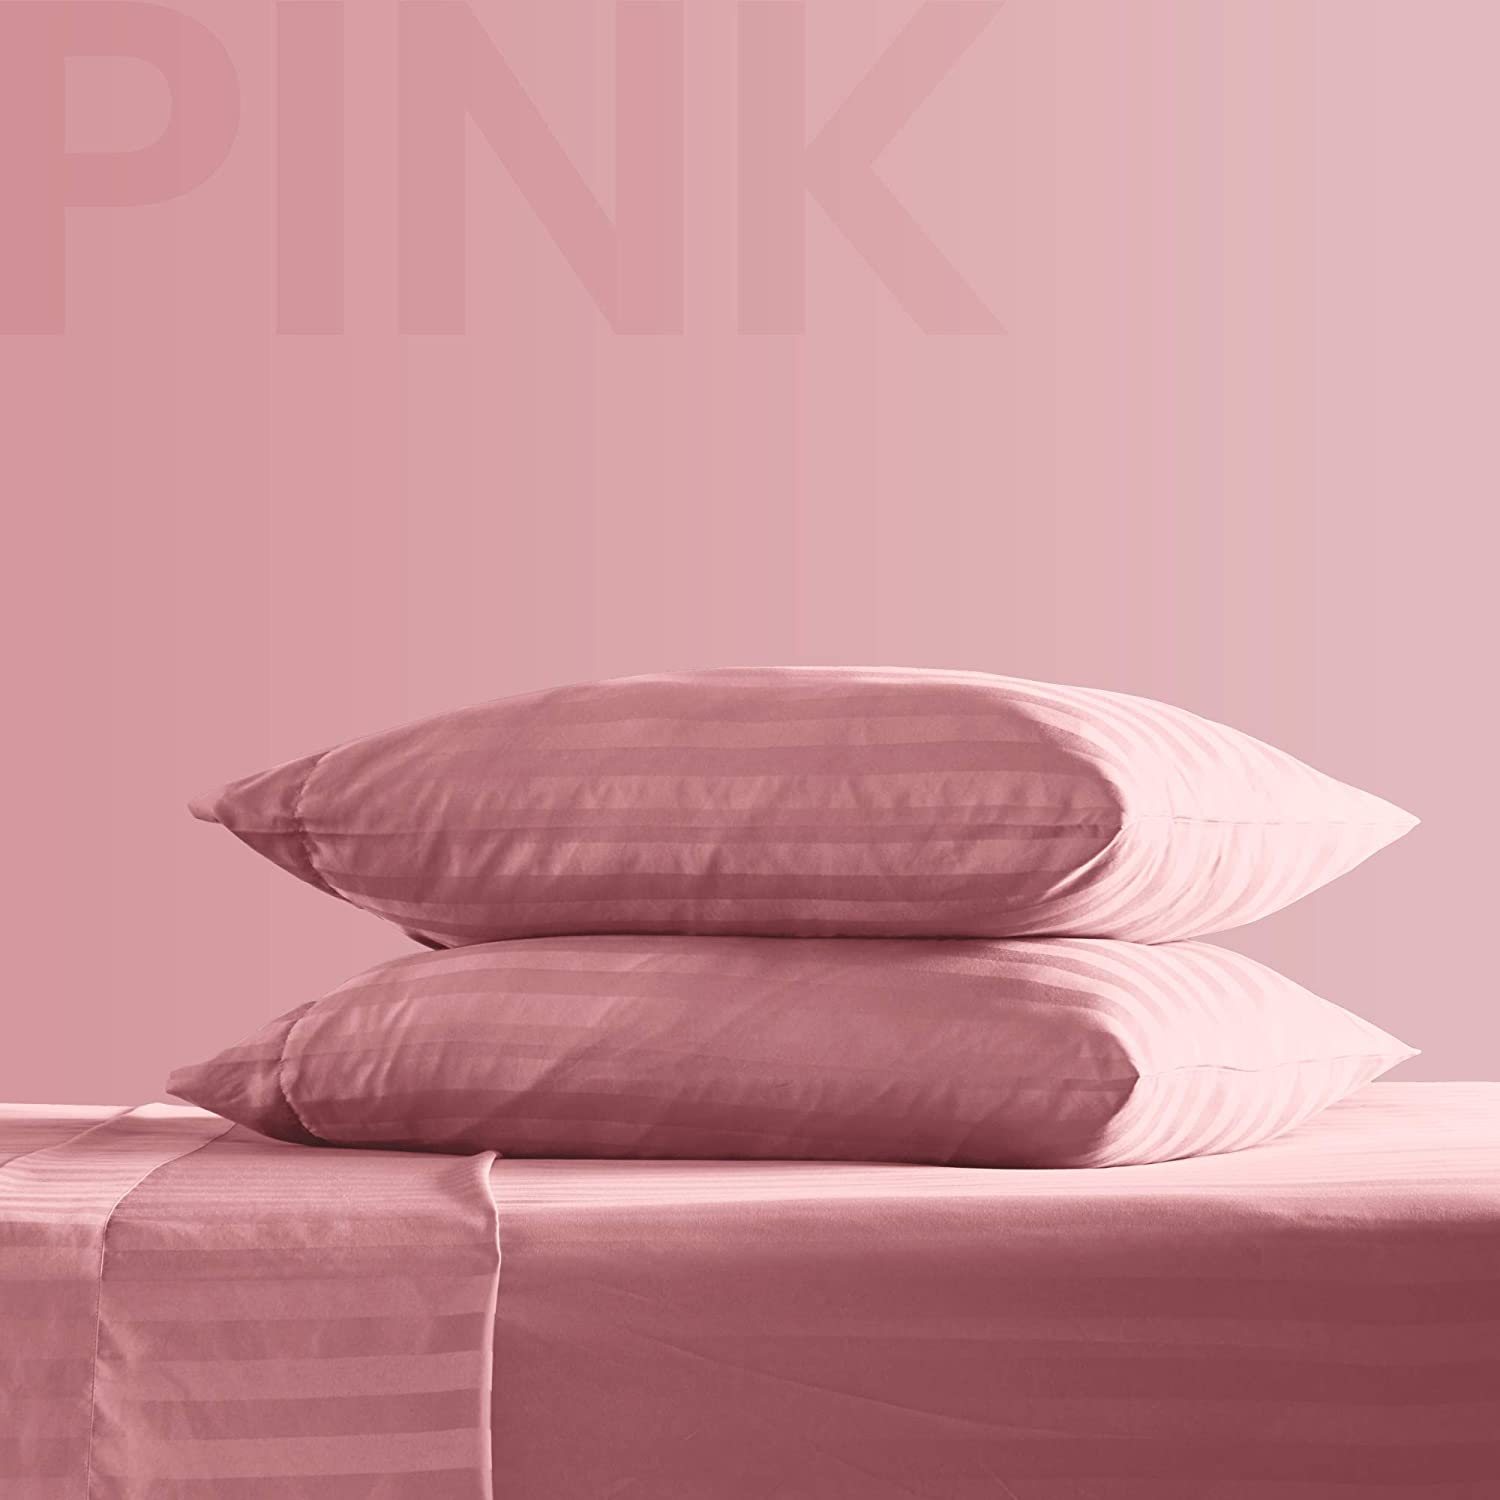 SLEEP ZONE Striped Bed Sheet Sets 120gsm Luxury Microfiber Temperature Regulation Sheets Soft Wrinkle Free Fade Resistant Easy Care (Pink, Queen)